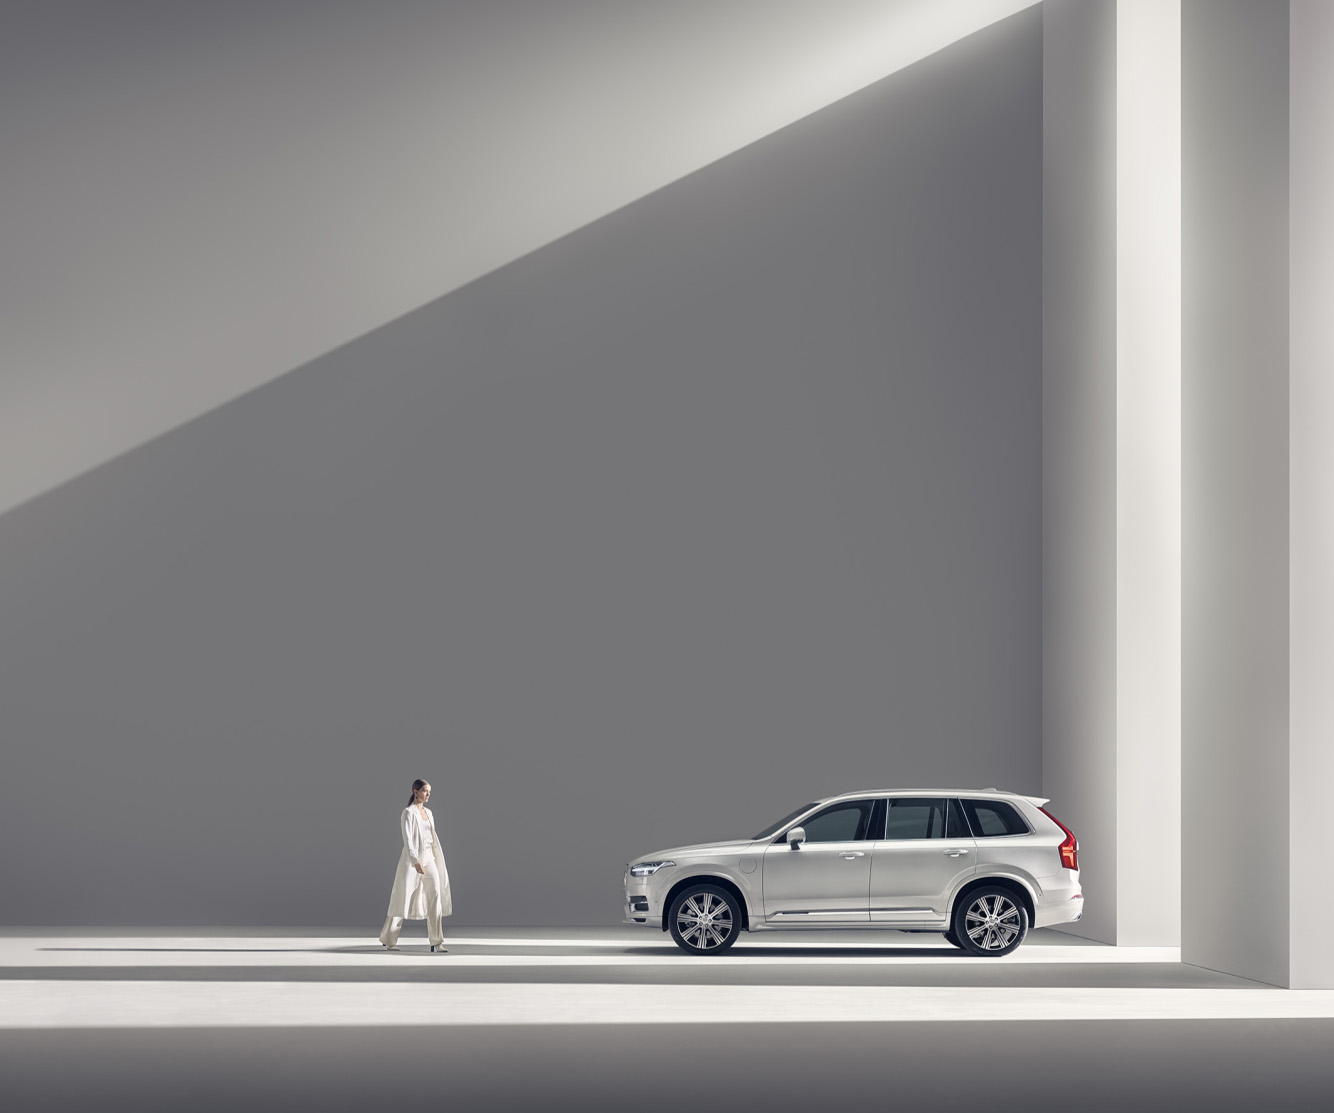 Betting on minimalistic style to win the prize. Interview with Car Photog...